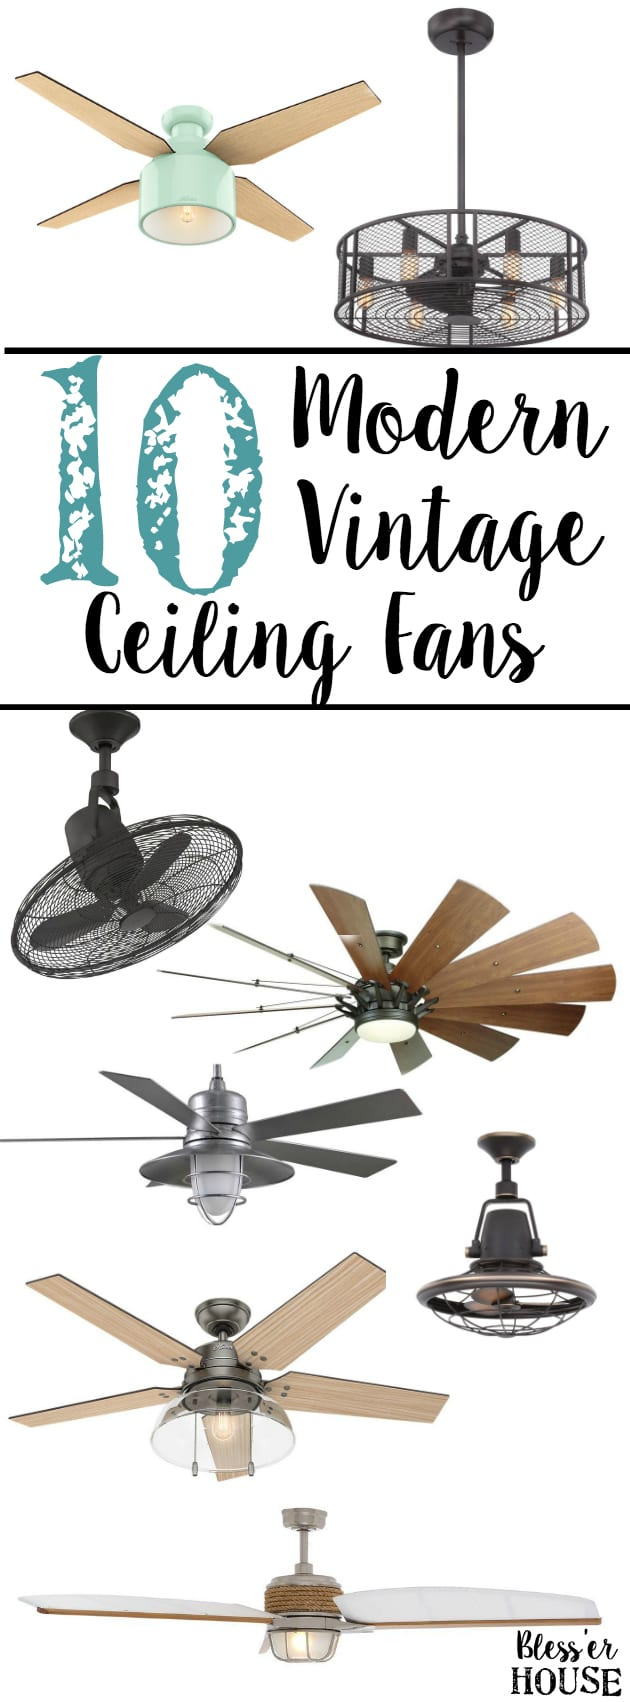 10 Modern Vintage Ceiling Fans | blesserhouse.com - A shopping guide for rustic / industrial / modern / vintage ceiling fans that won't break the bank.